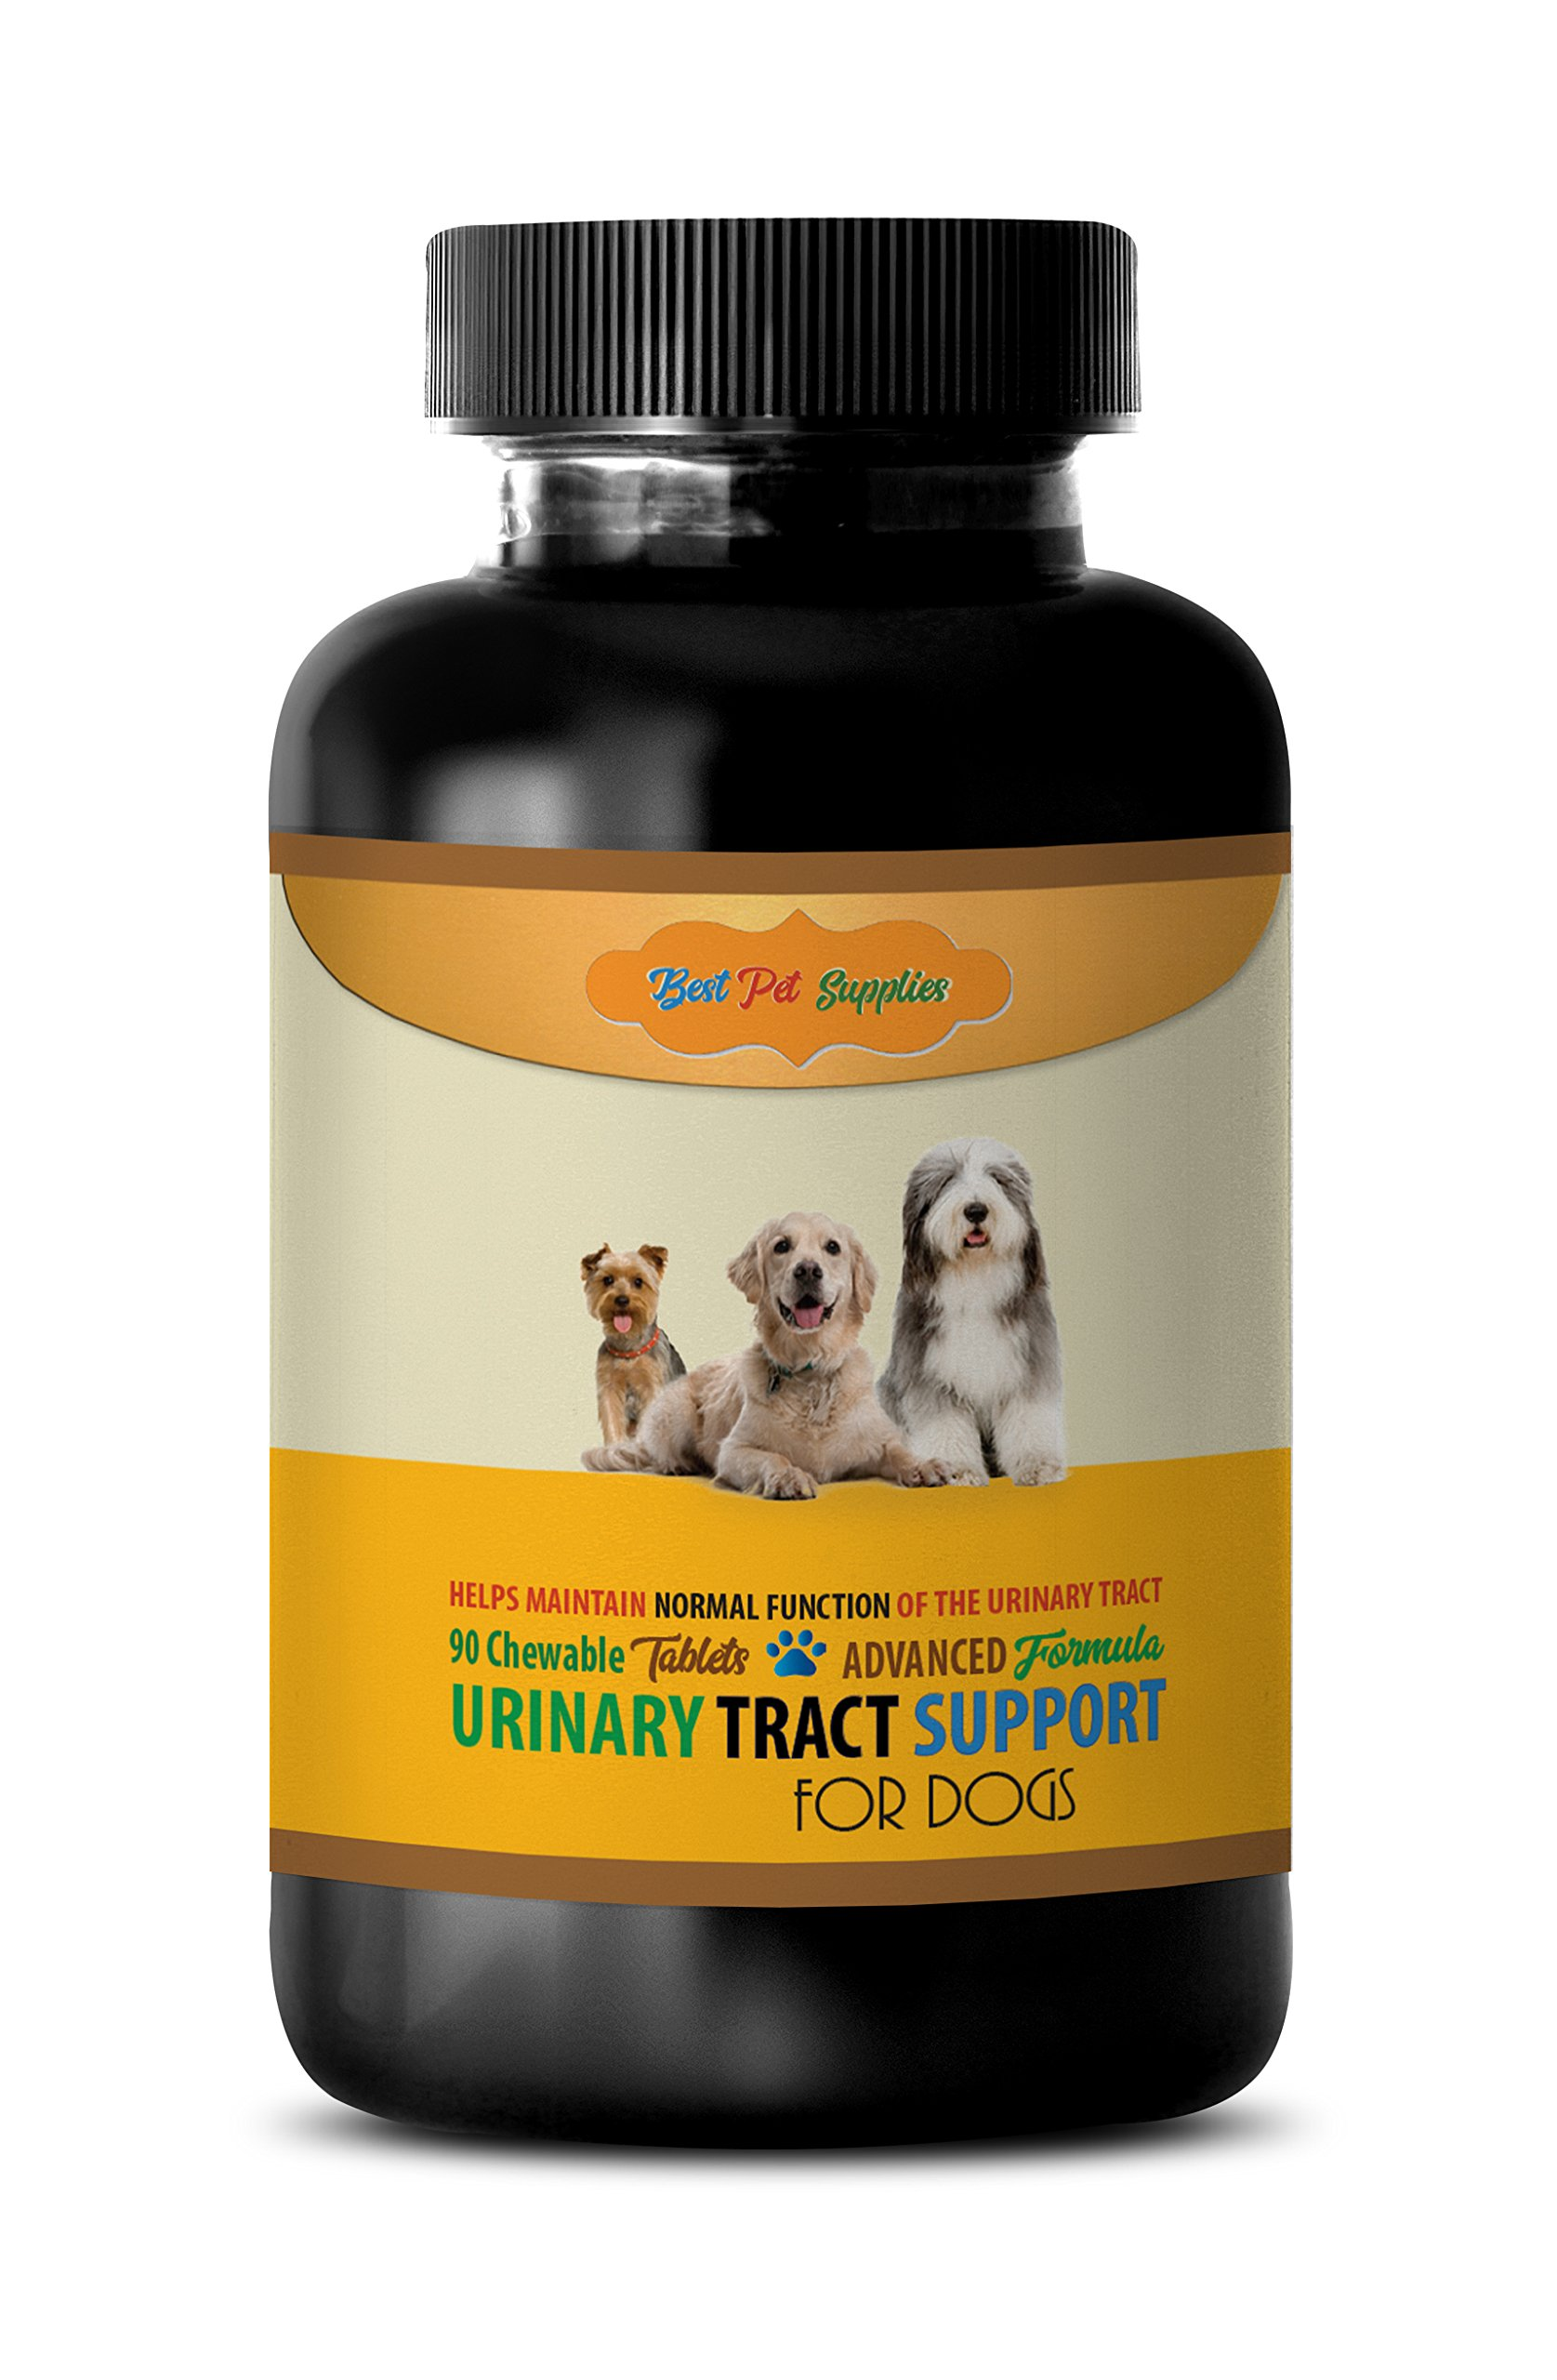 BEST PET SUPPLIES LLC dog urinary health support - ADVANCED URINARY TRACT SUPPORT - FOR DOGS - CHEWABLE - POWERFUL DOG FORMULA - cranberry for dogs uti - 90 Chews (1 Bottle)